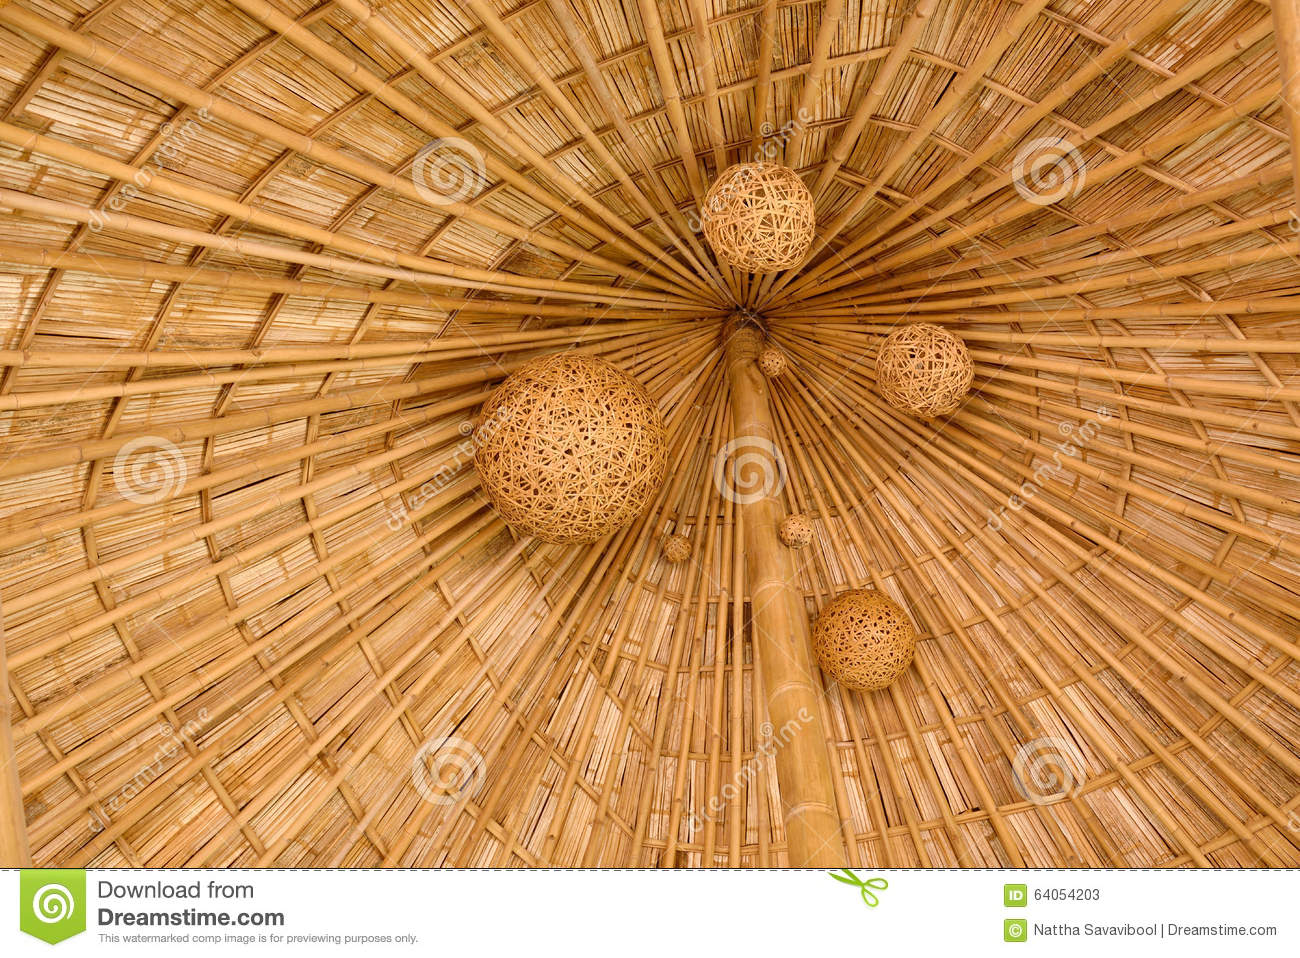 Bamboo Shingle Roof With Woven Bamboo Hanging Folk Art